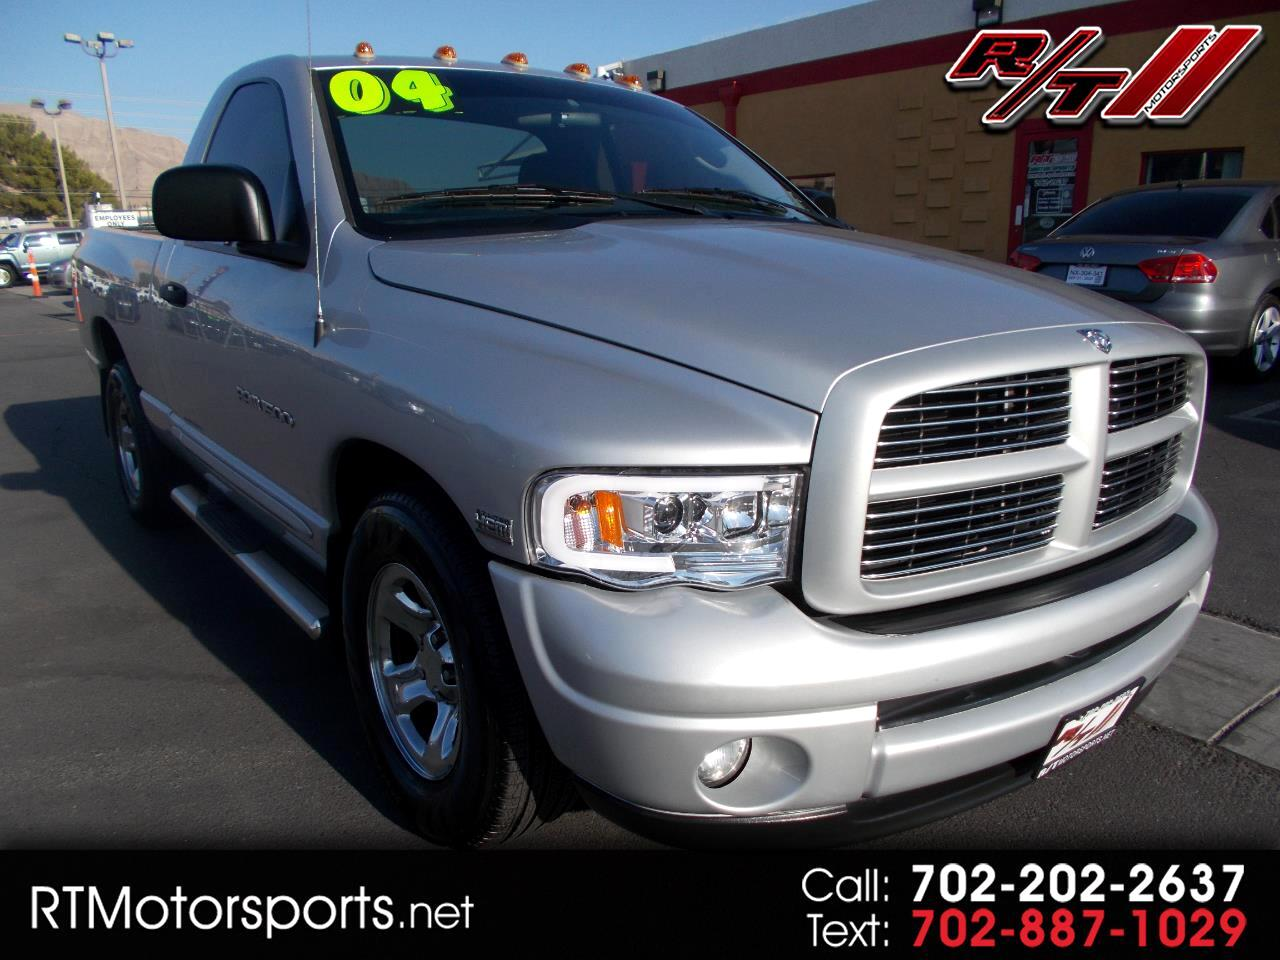 Dodge Ram 1500 Laramie Long Bed 2WD 2004